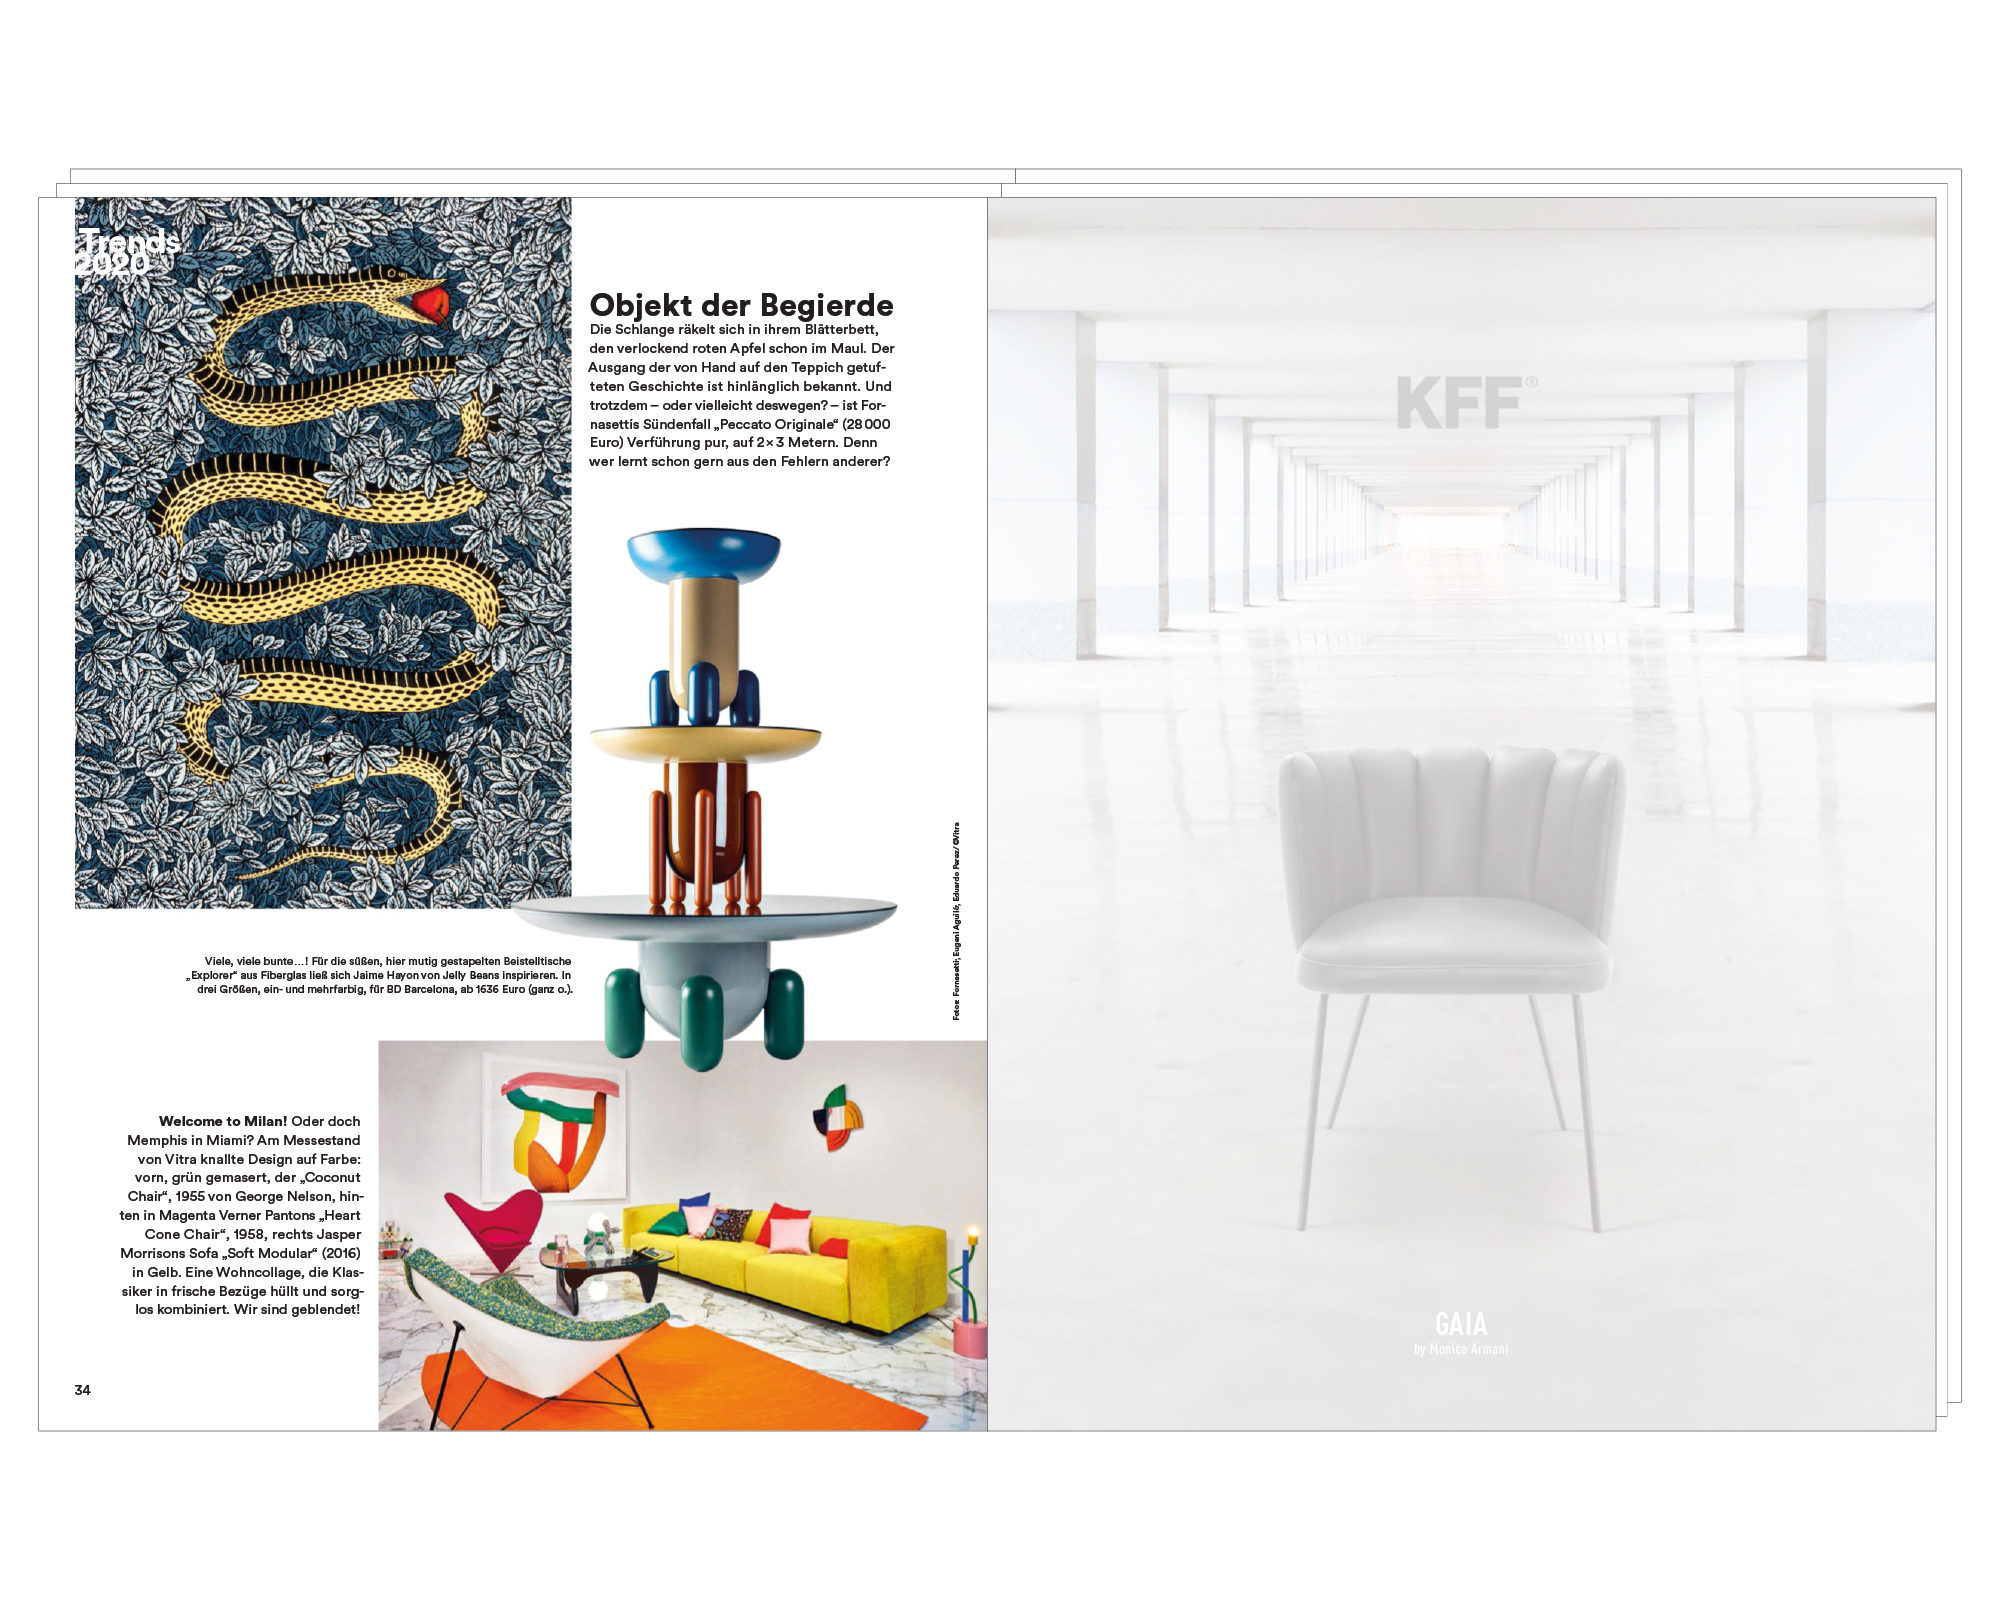 Was Ist Ein Bd Objects With Love Press Ad Architectural Digest Choice